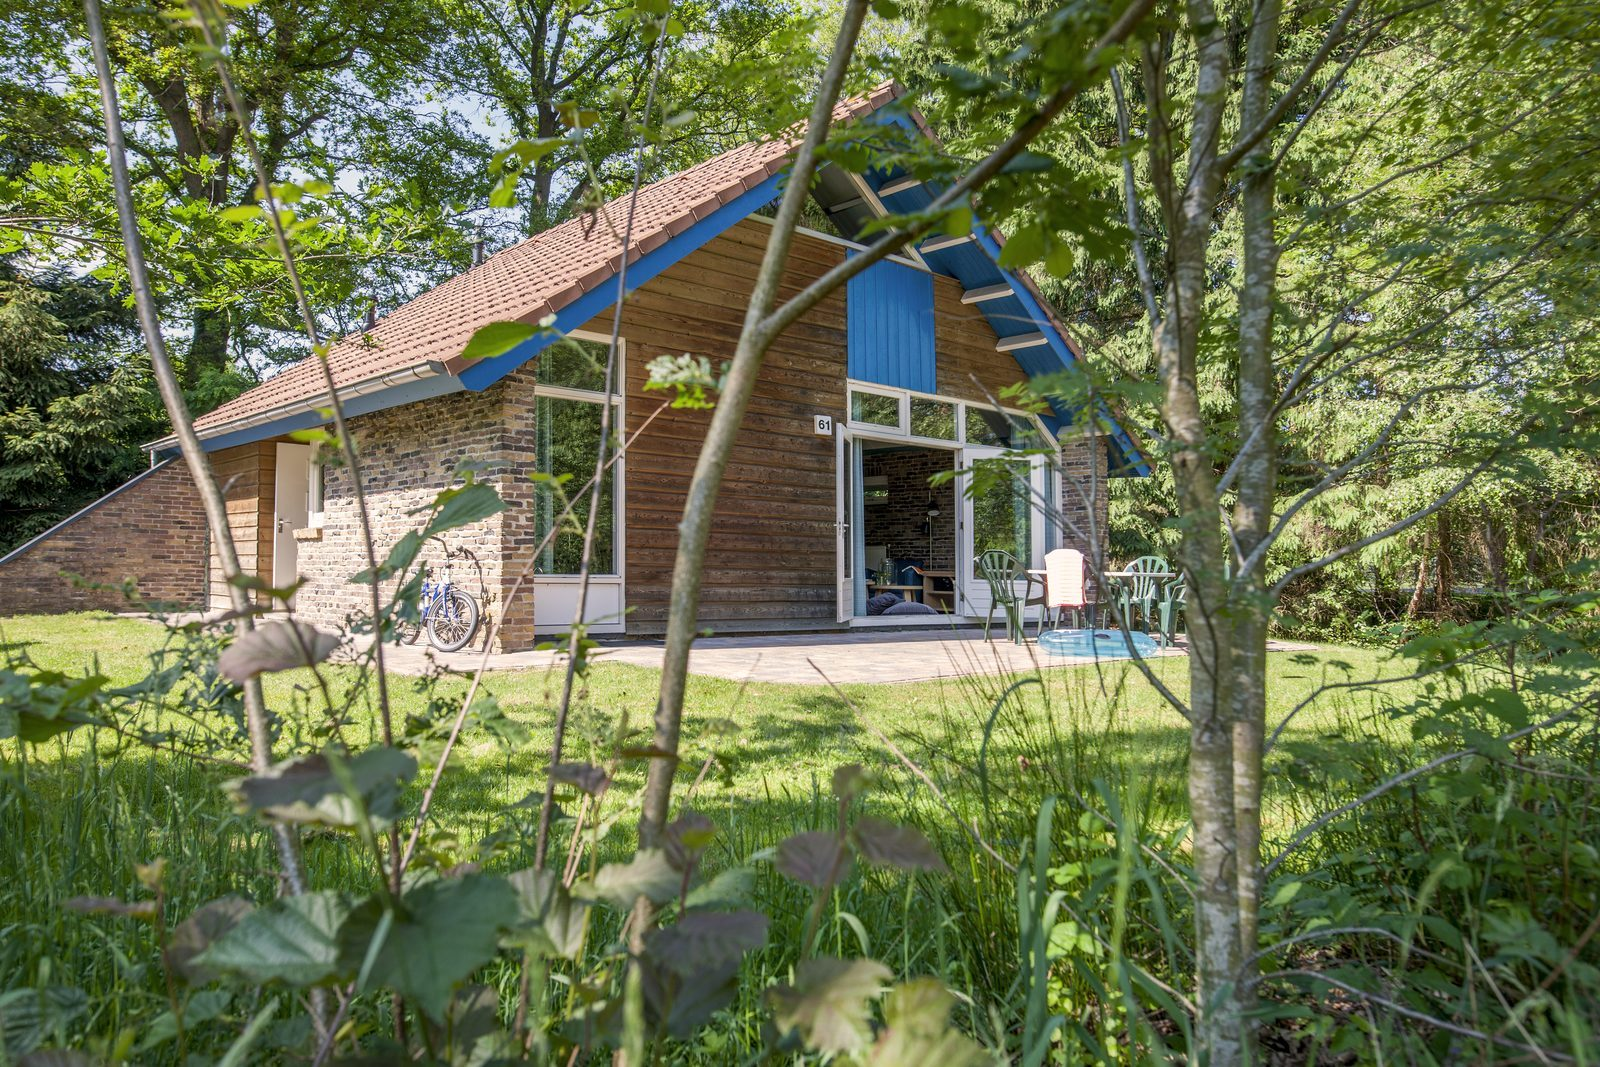 Group accommodation Drenthe